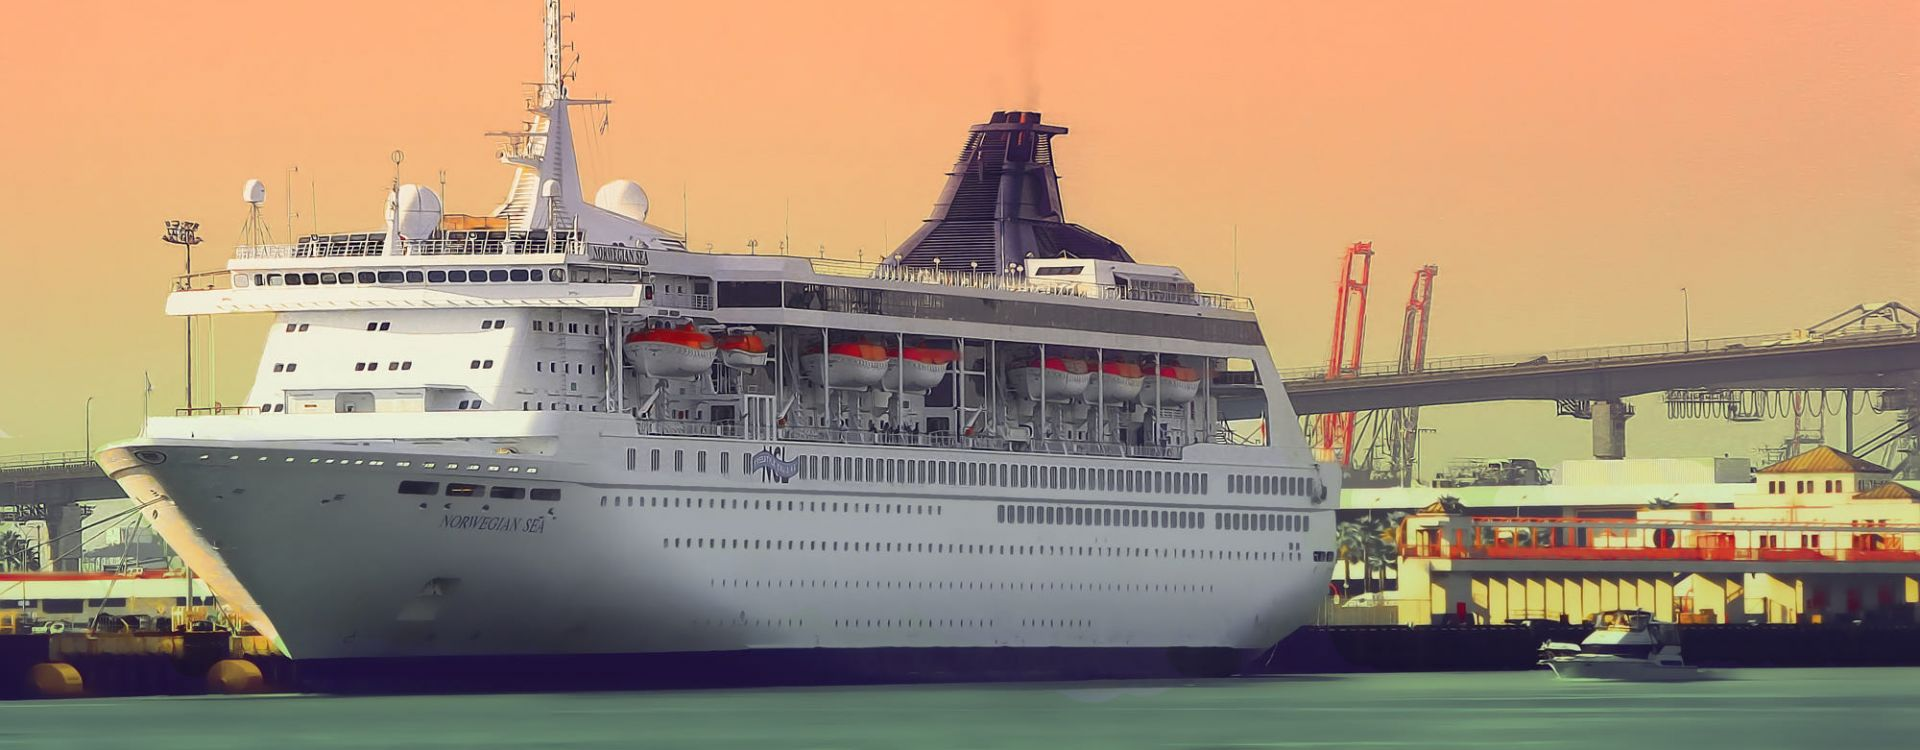 Deal: Cruise + Hotel